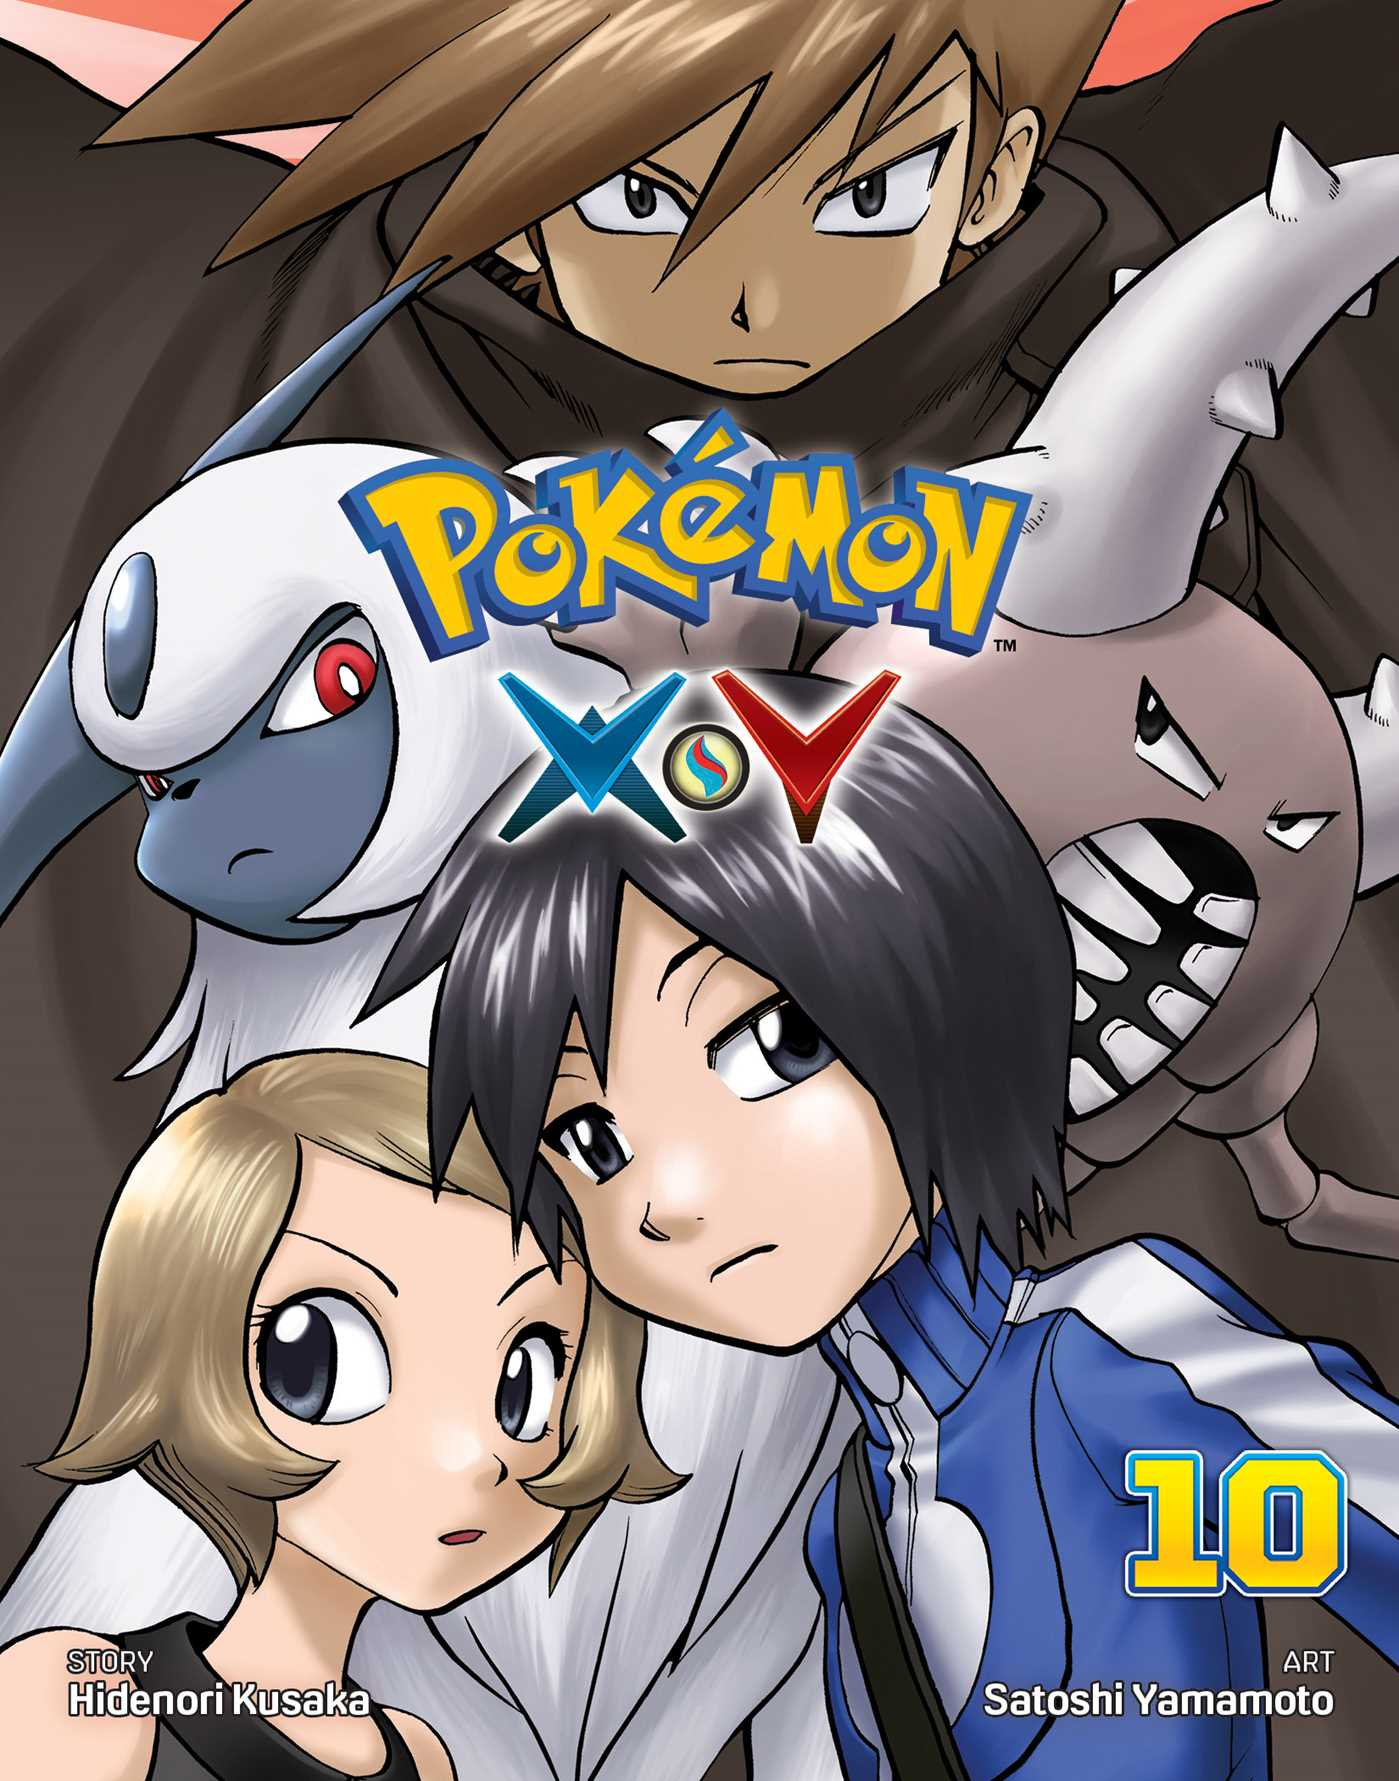 Pokemon X Y Vol 10